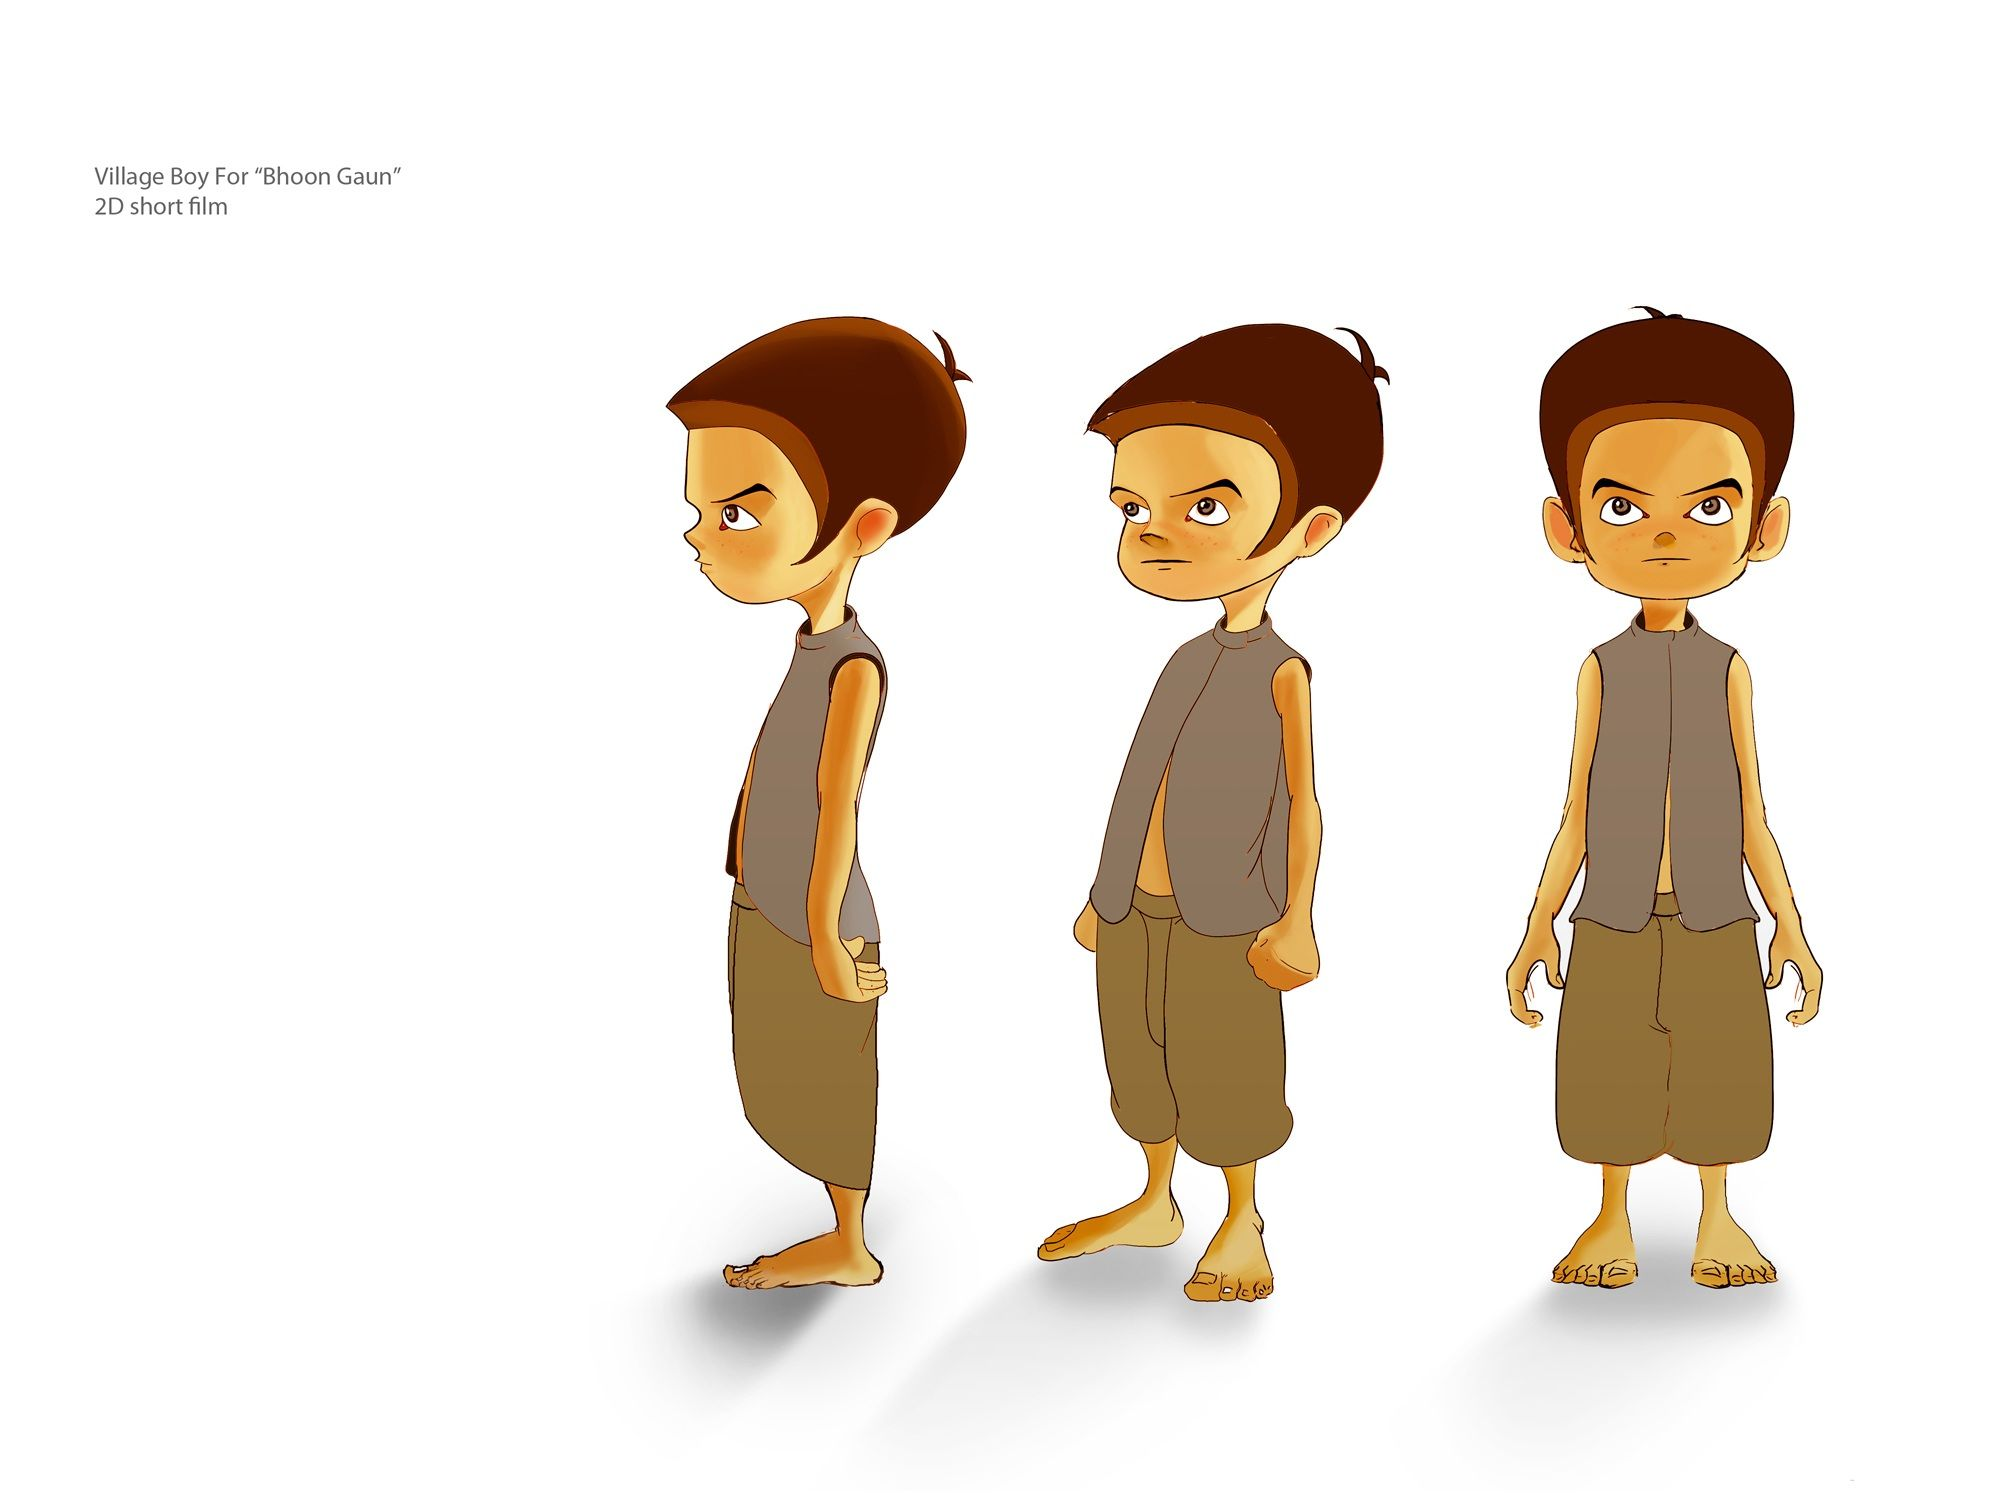 Character Design Little Boy : Village kid character for d short film bhoot gaun